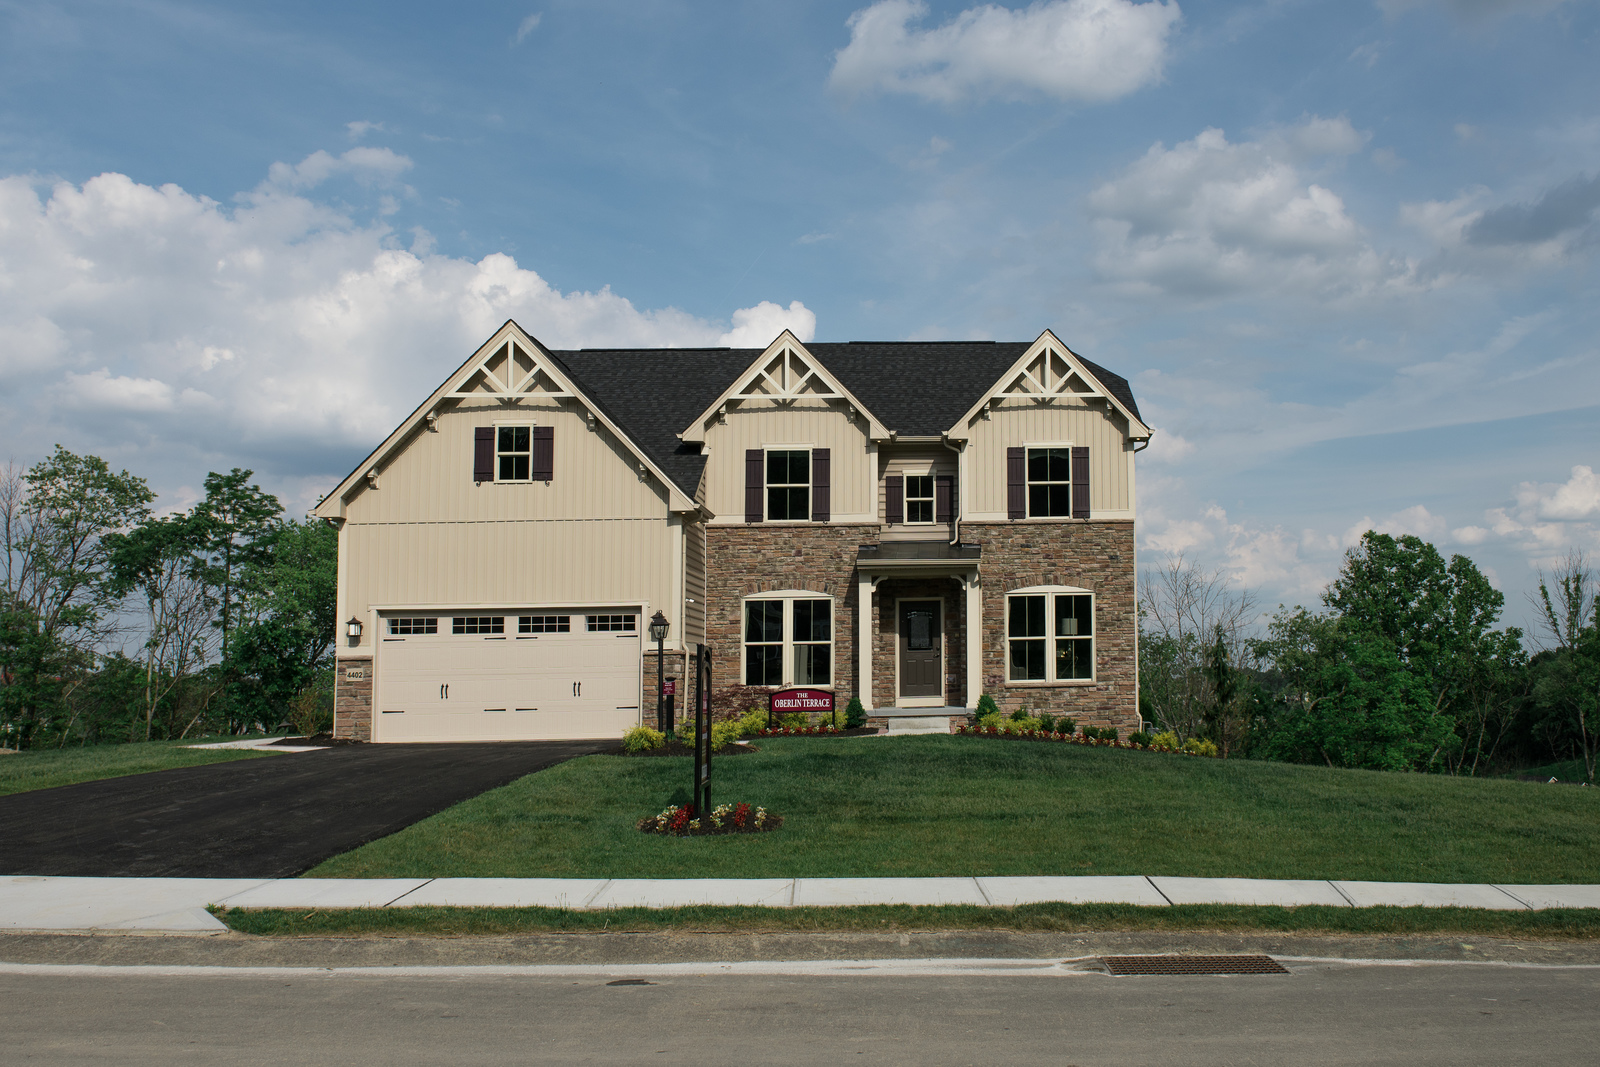 New oberlin terrace home model for sale heartland homes for Heartland homes pittsburgh floor plans